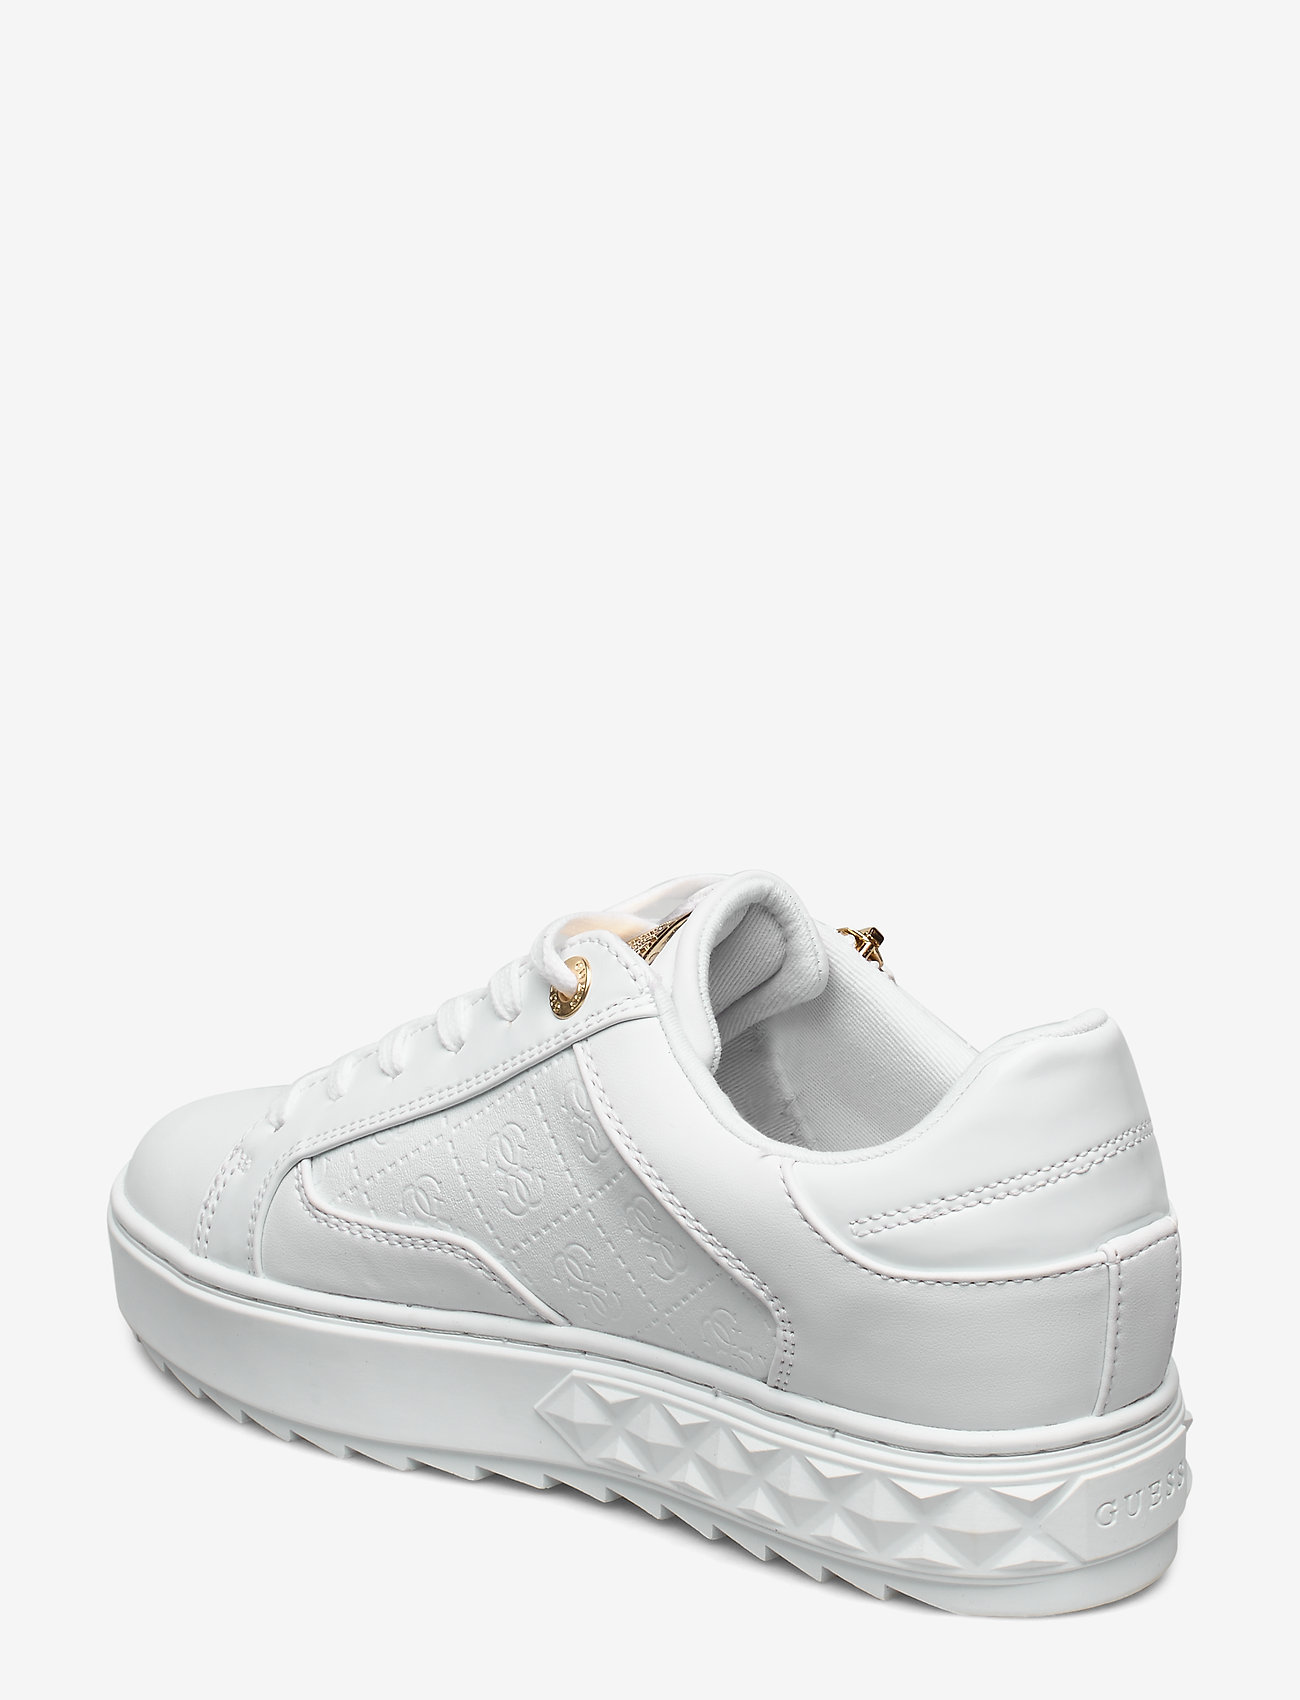 Guess Figgi/active Lady/leather Like - Sneakers White